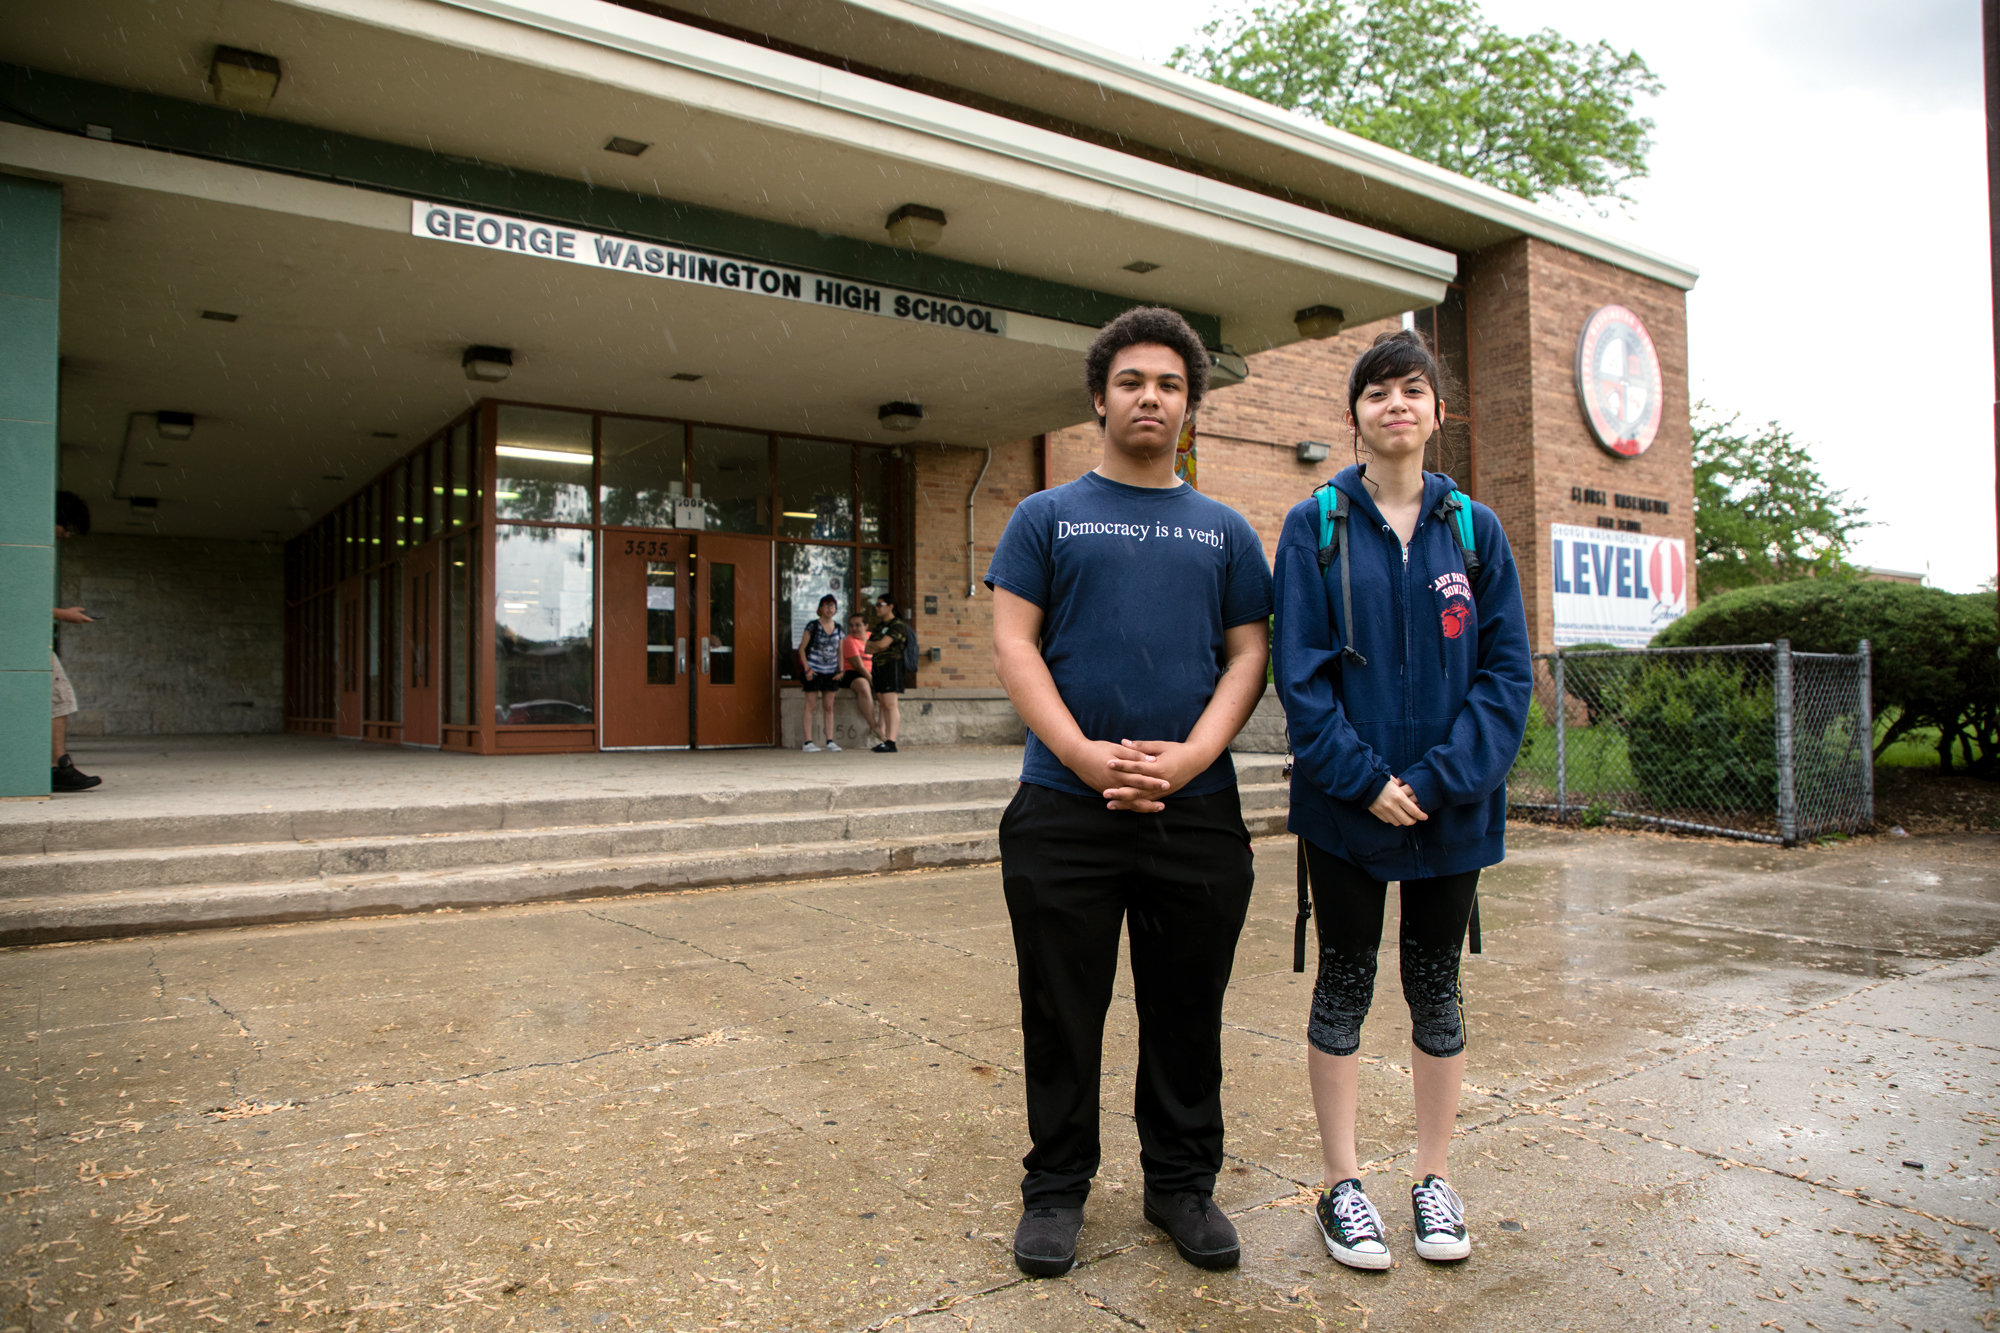 After Washington High School students Natalie Torres and Gerald Sullivan confronted Chicago Board of Education members in May, they were told their school was now at the top of a school repair priority list. (Andrew Gill/WBEZ)